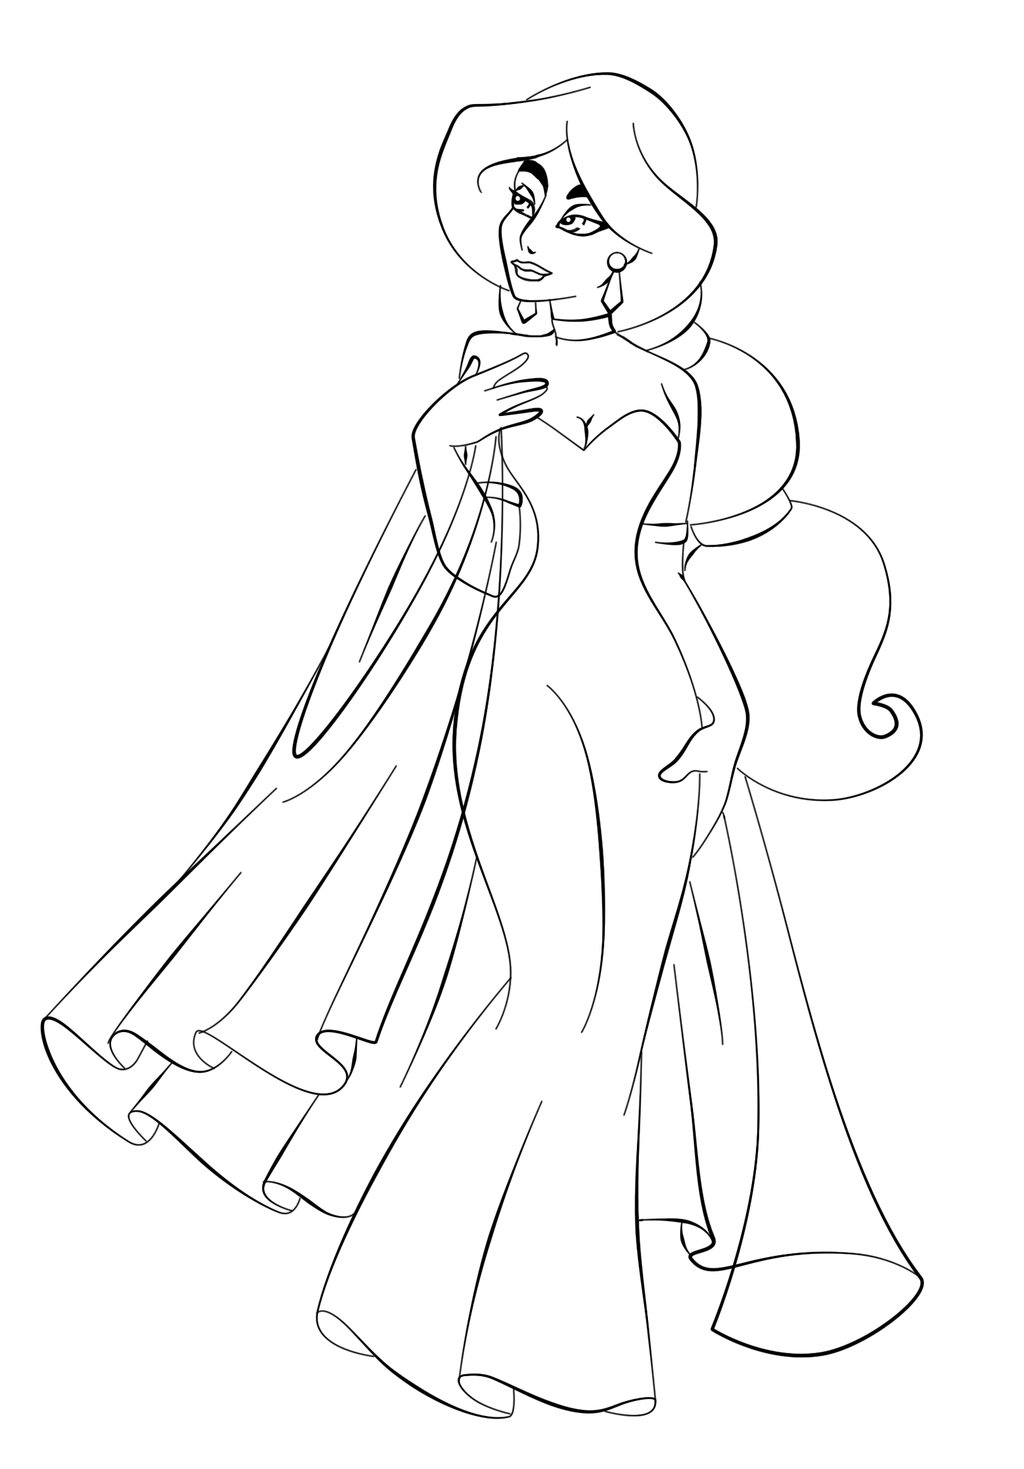 Princess jasmine colouring pages to print - Jasmine Coloring Page